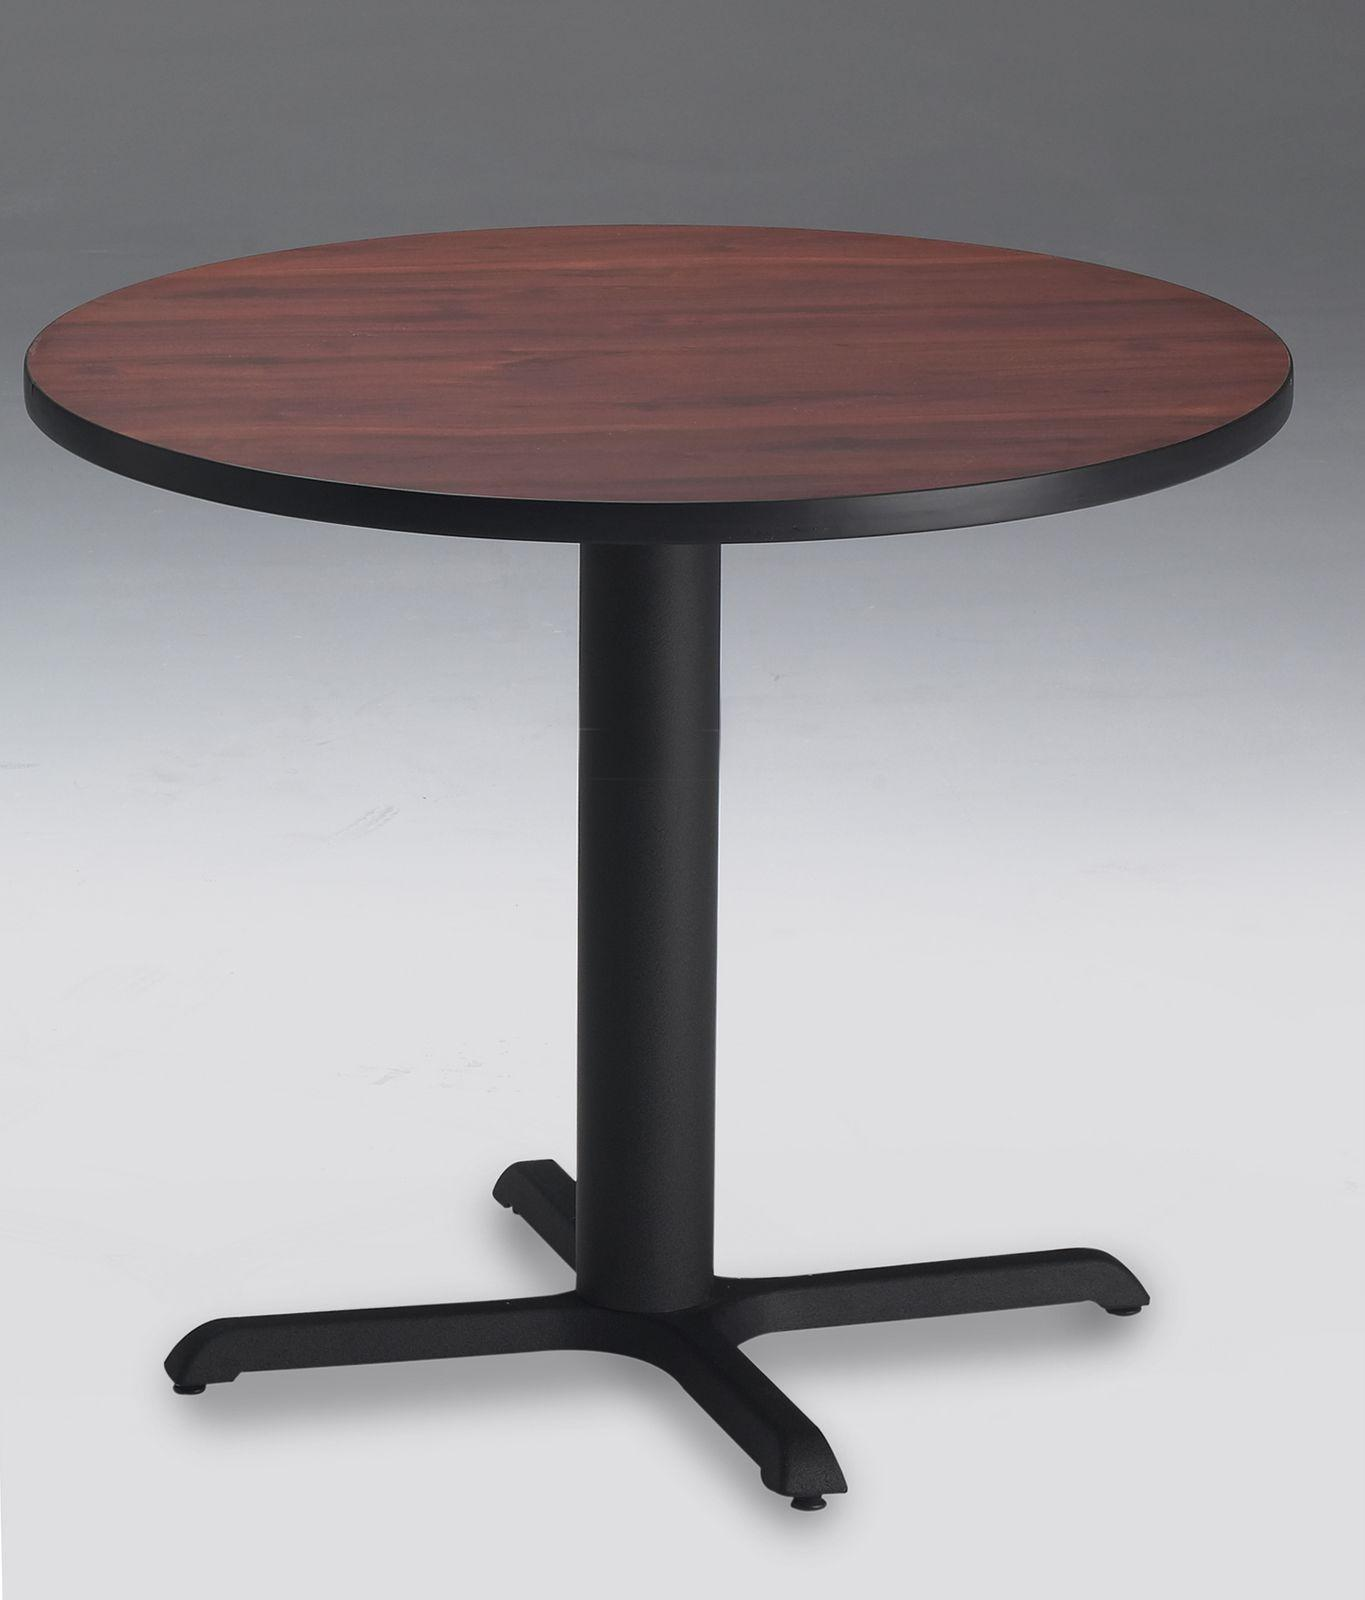 Mayline Bistro Dining Height 30 Inch Round Table Overstock Shopping